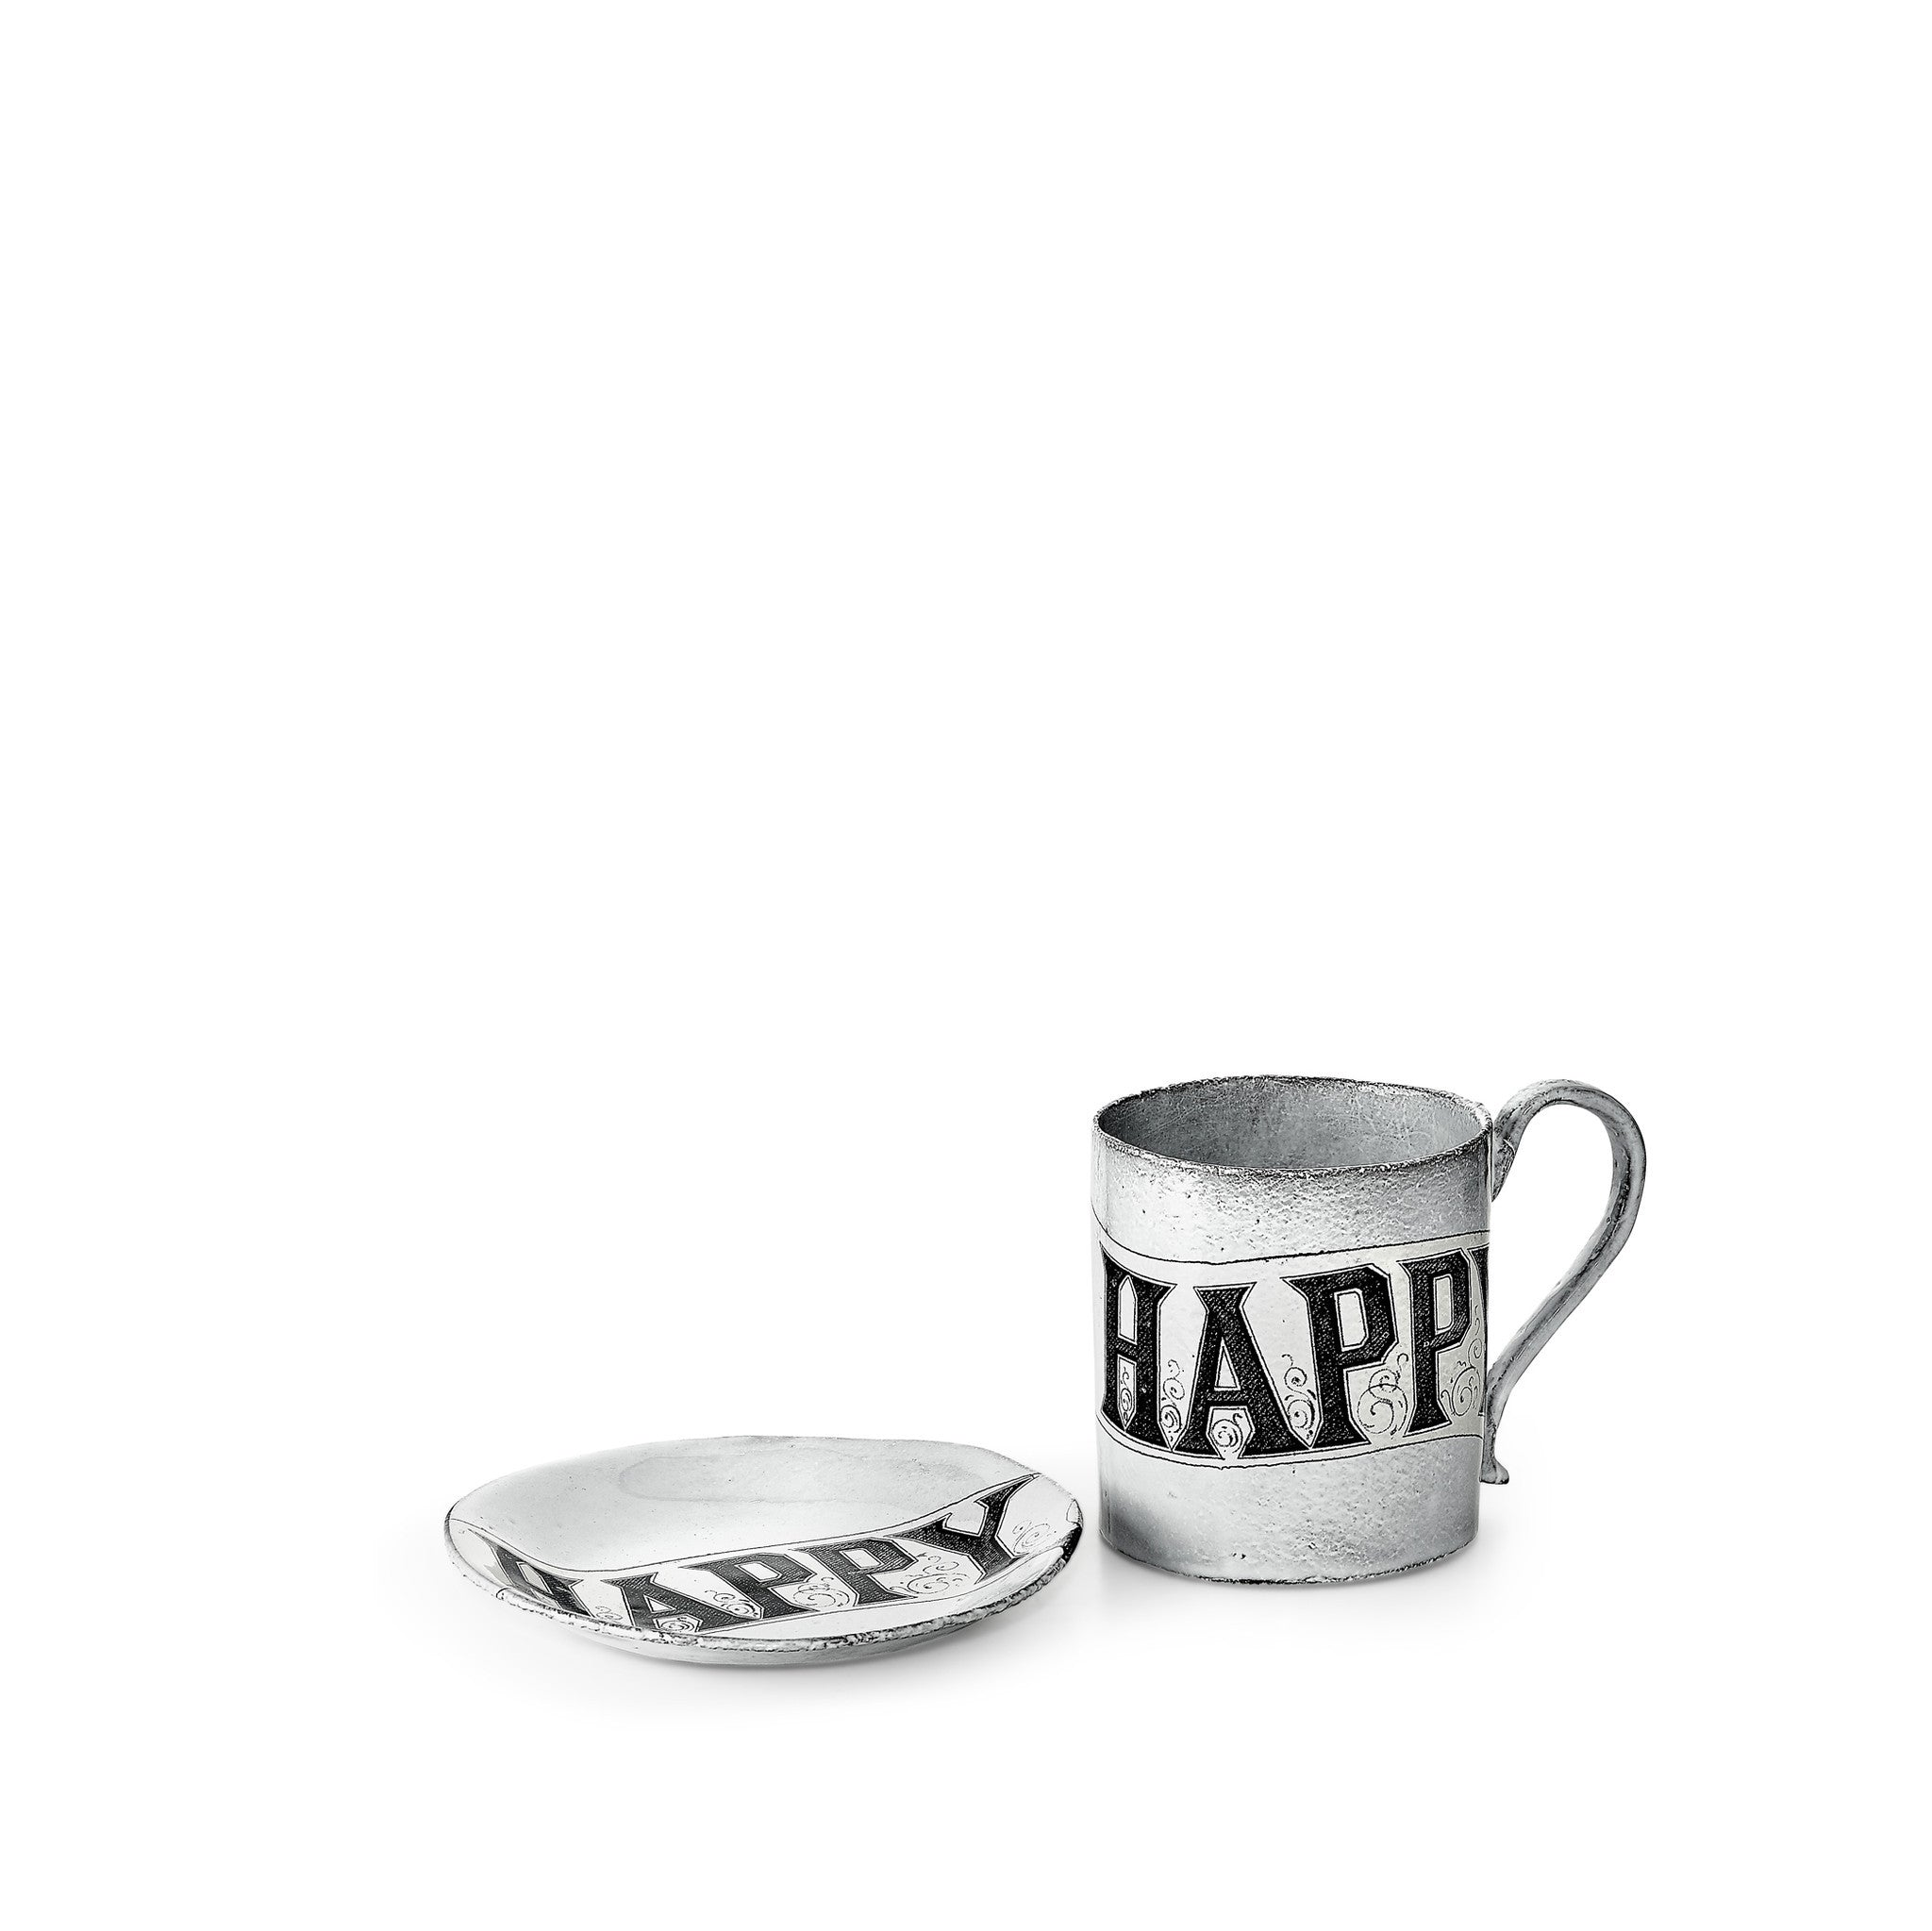 Happy Saucer by Astier de Villatte